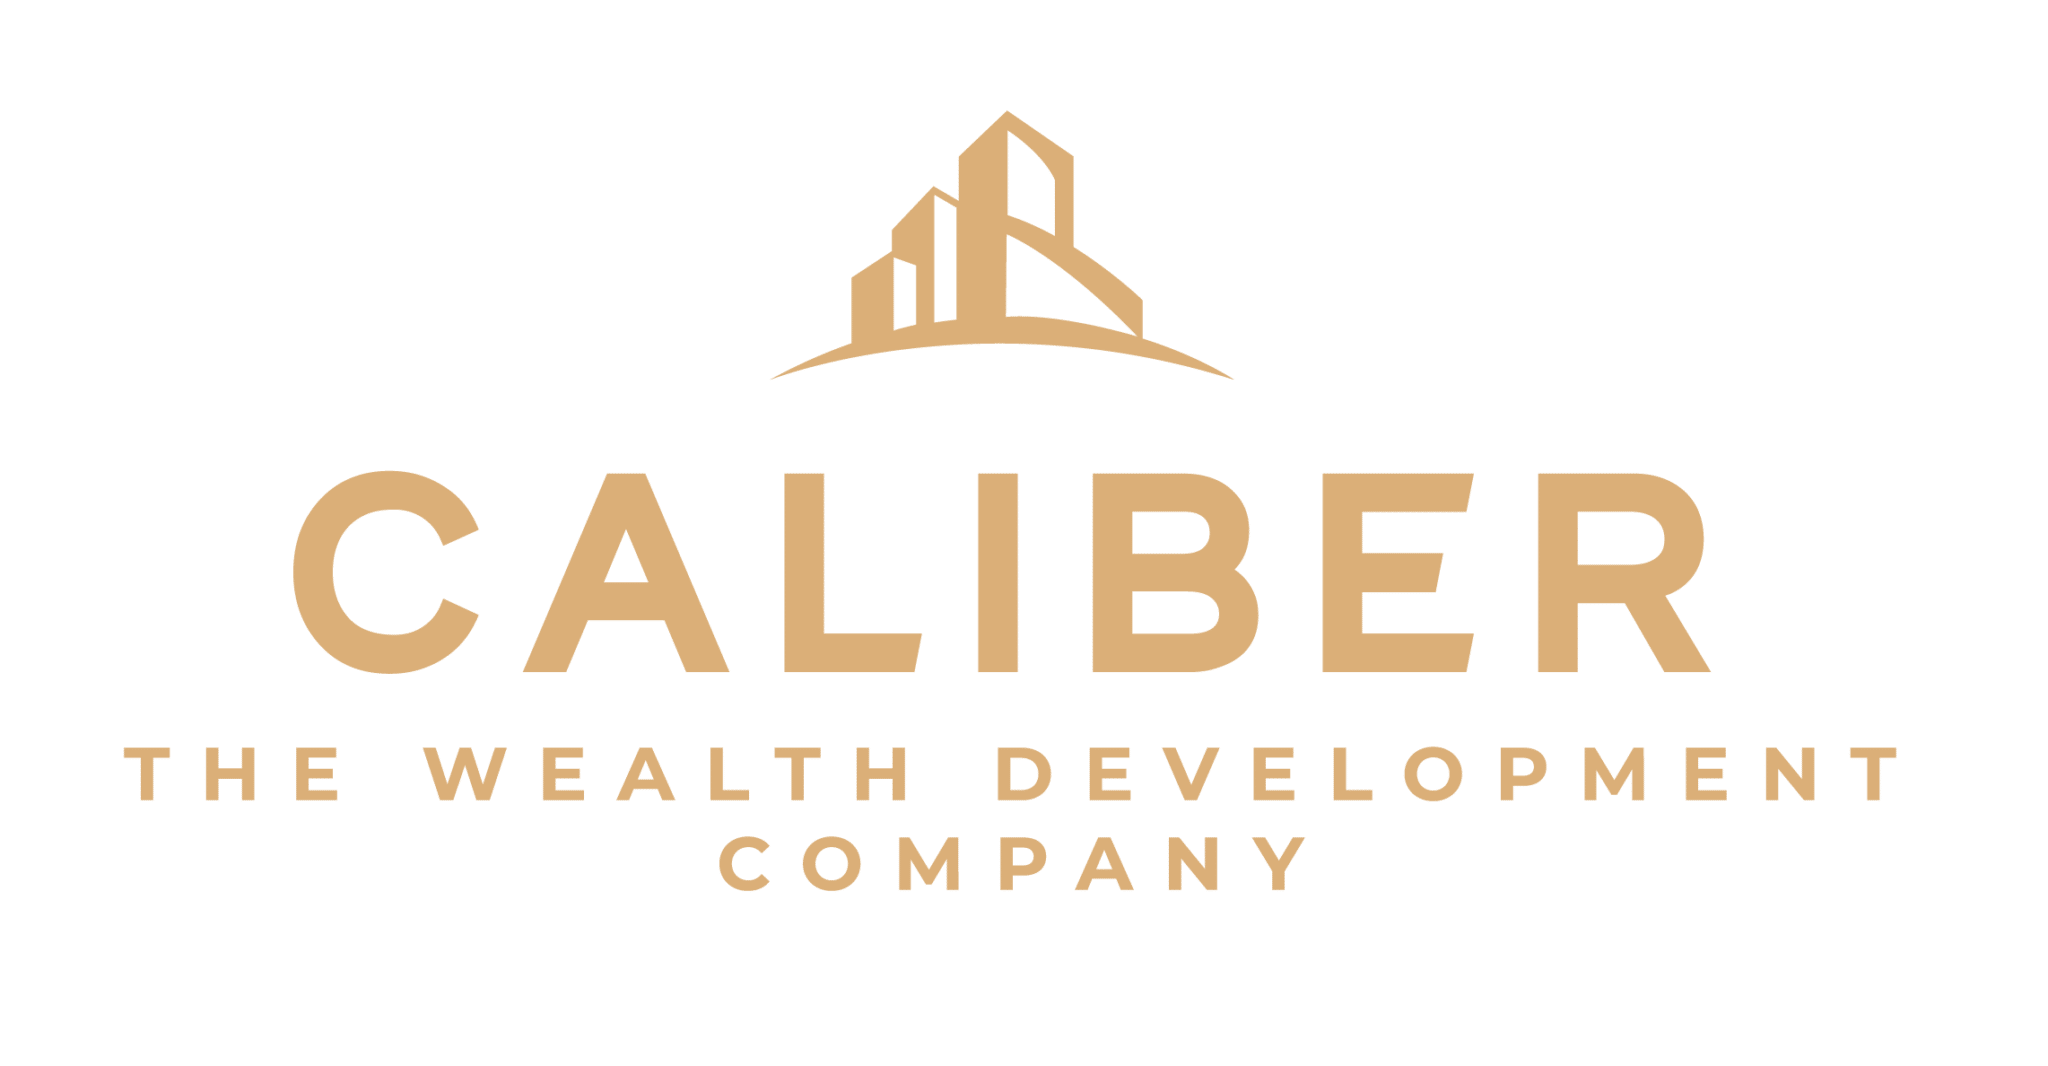 Caliber ( The Wealth Development Company ) ALTERNATE LOGO - COLOR - ALL GOLD - RGB